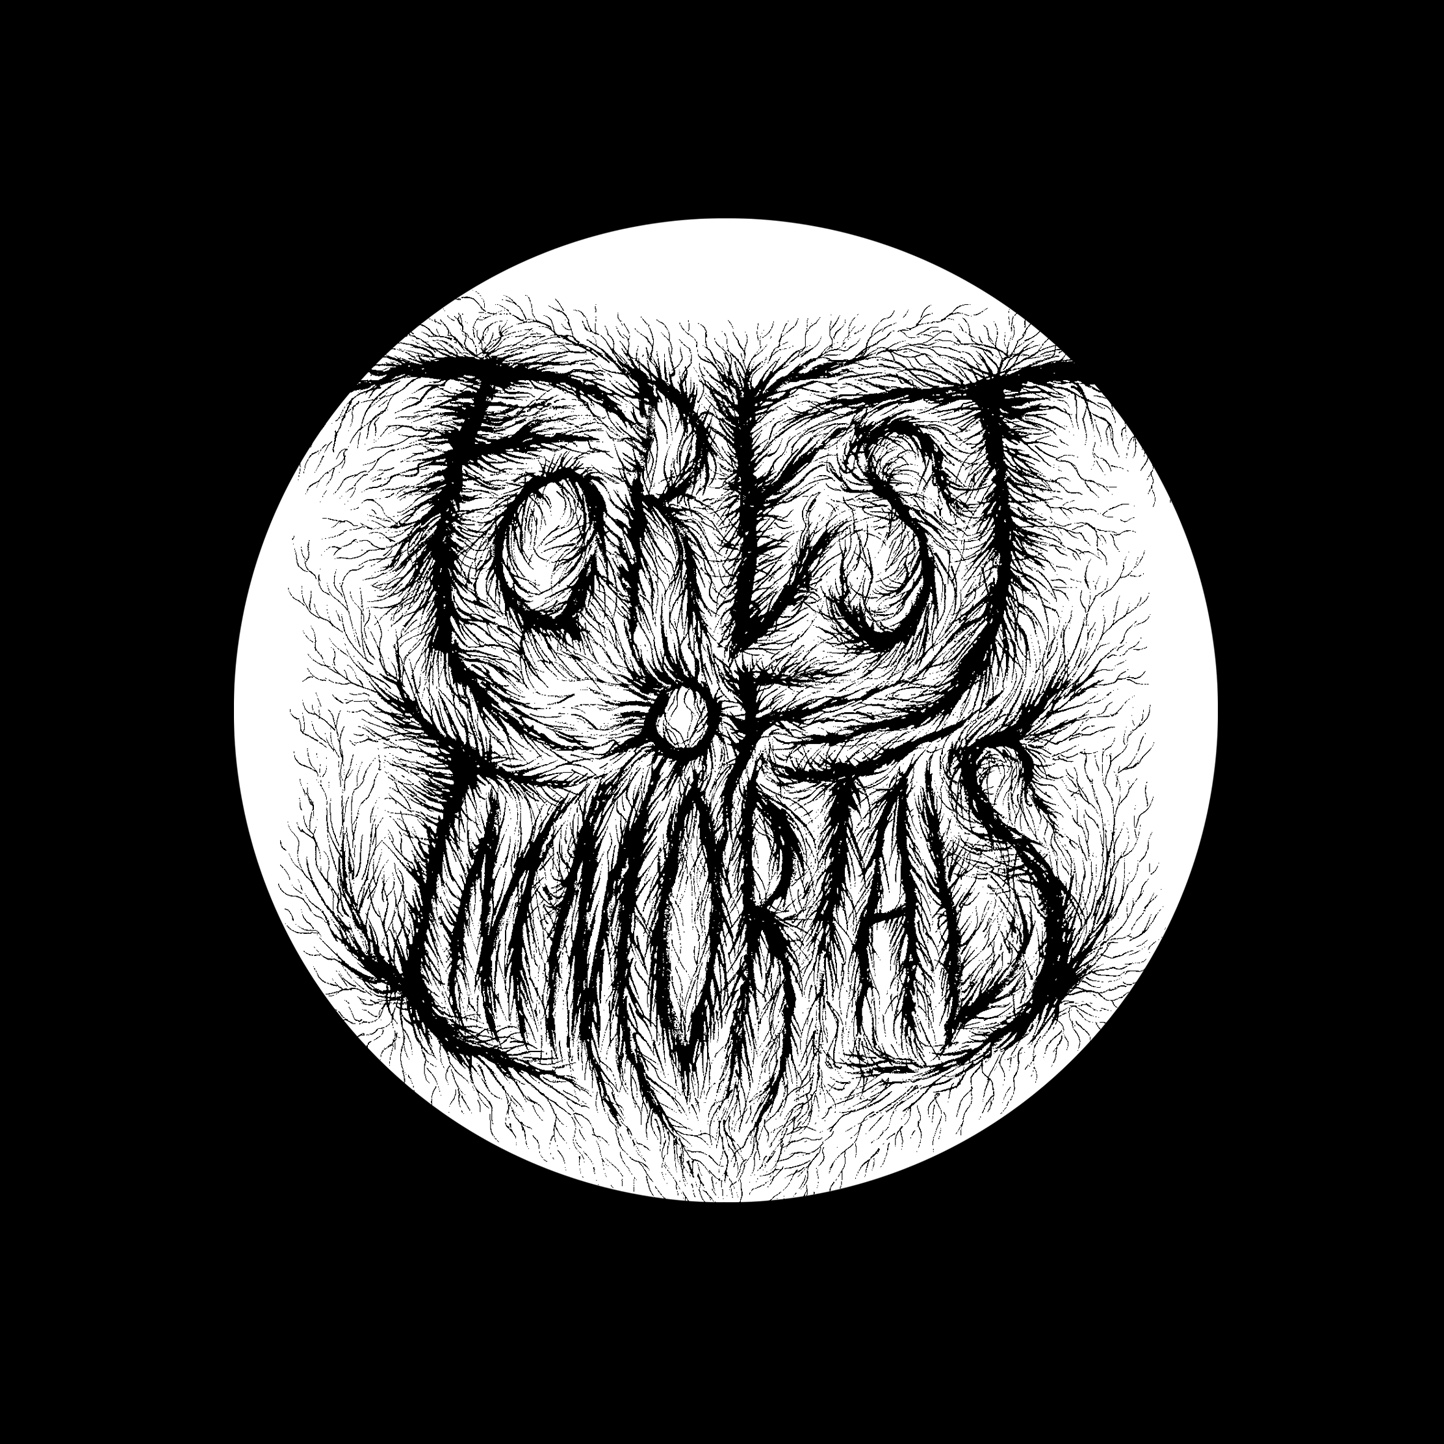 forest of immortals logo - moon - bw.jpg